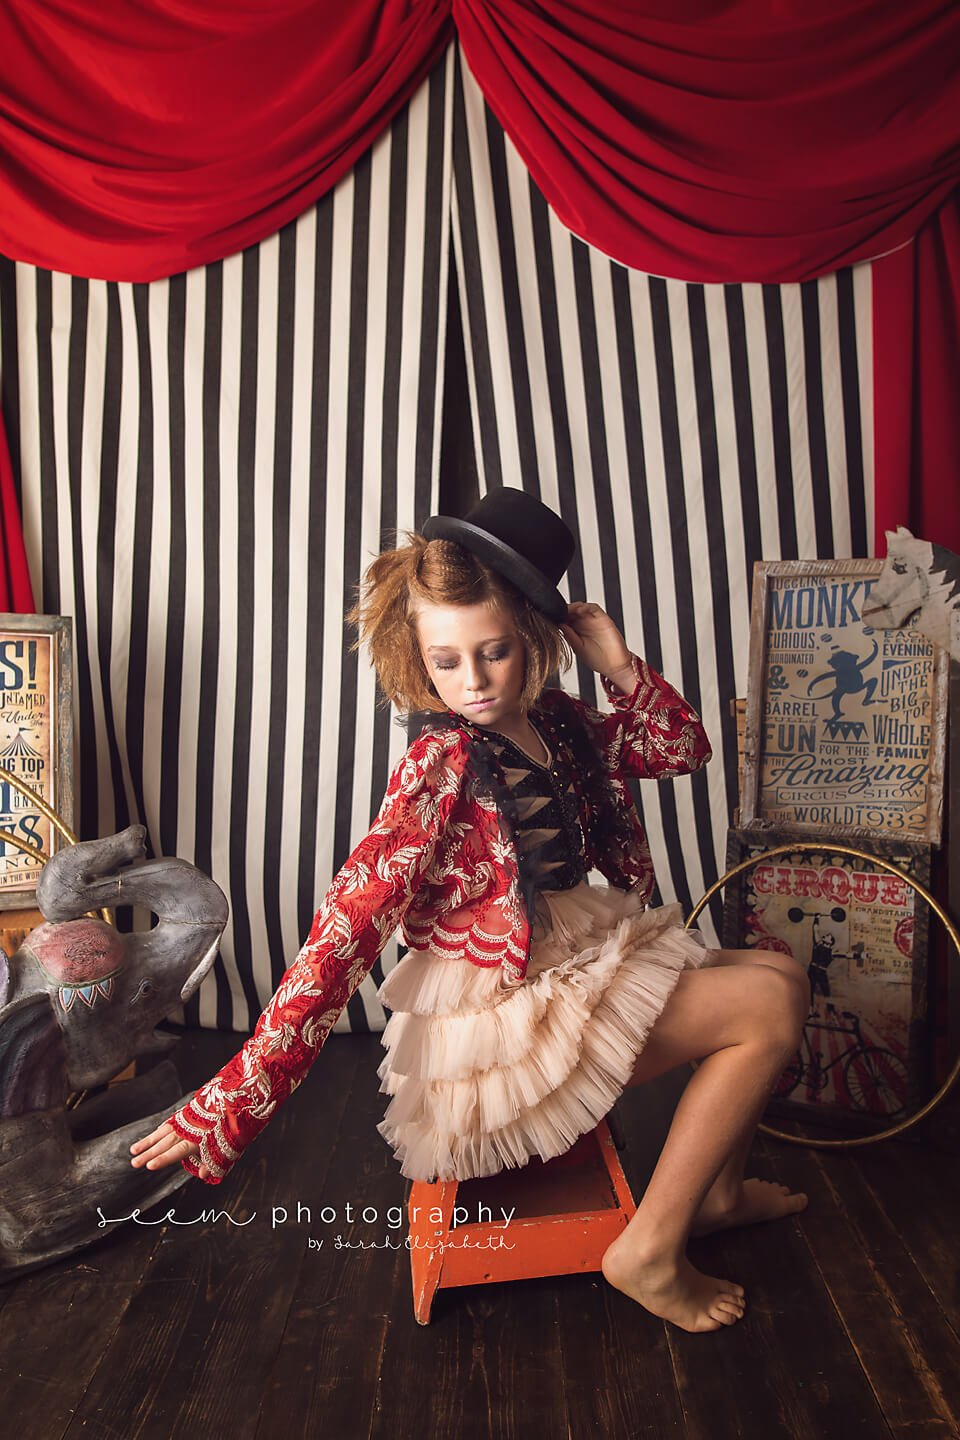 SEEM photography Circus Child with Hat